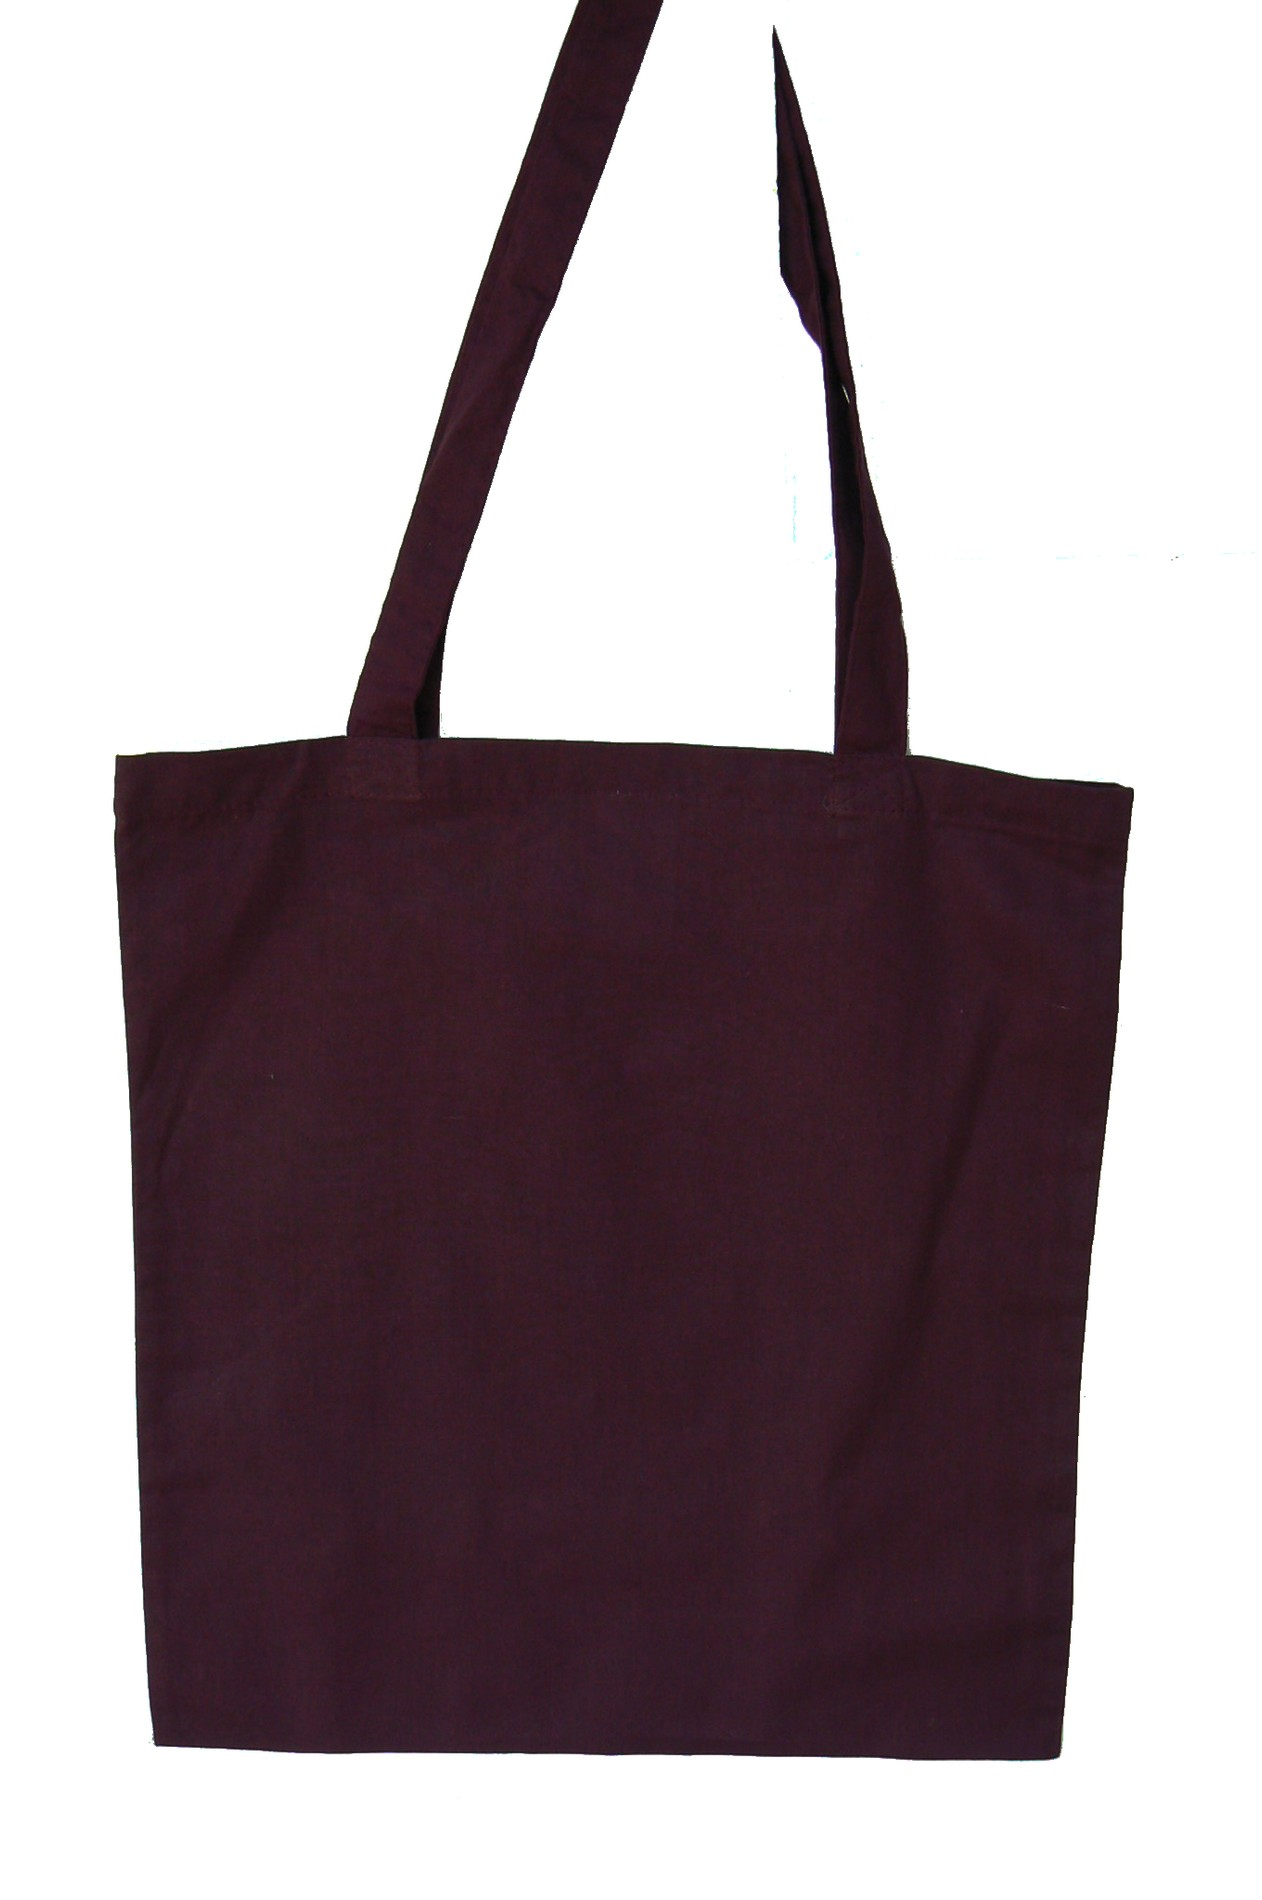 Sac shopping Tote bag Prune Bordeaux à customiser